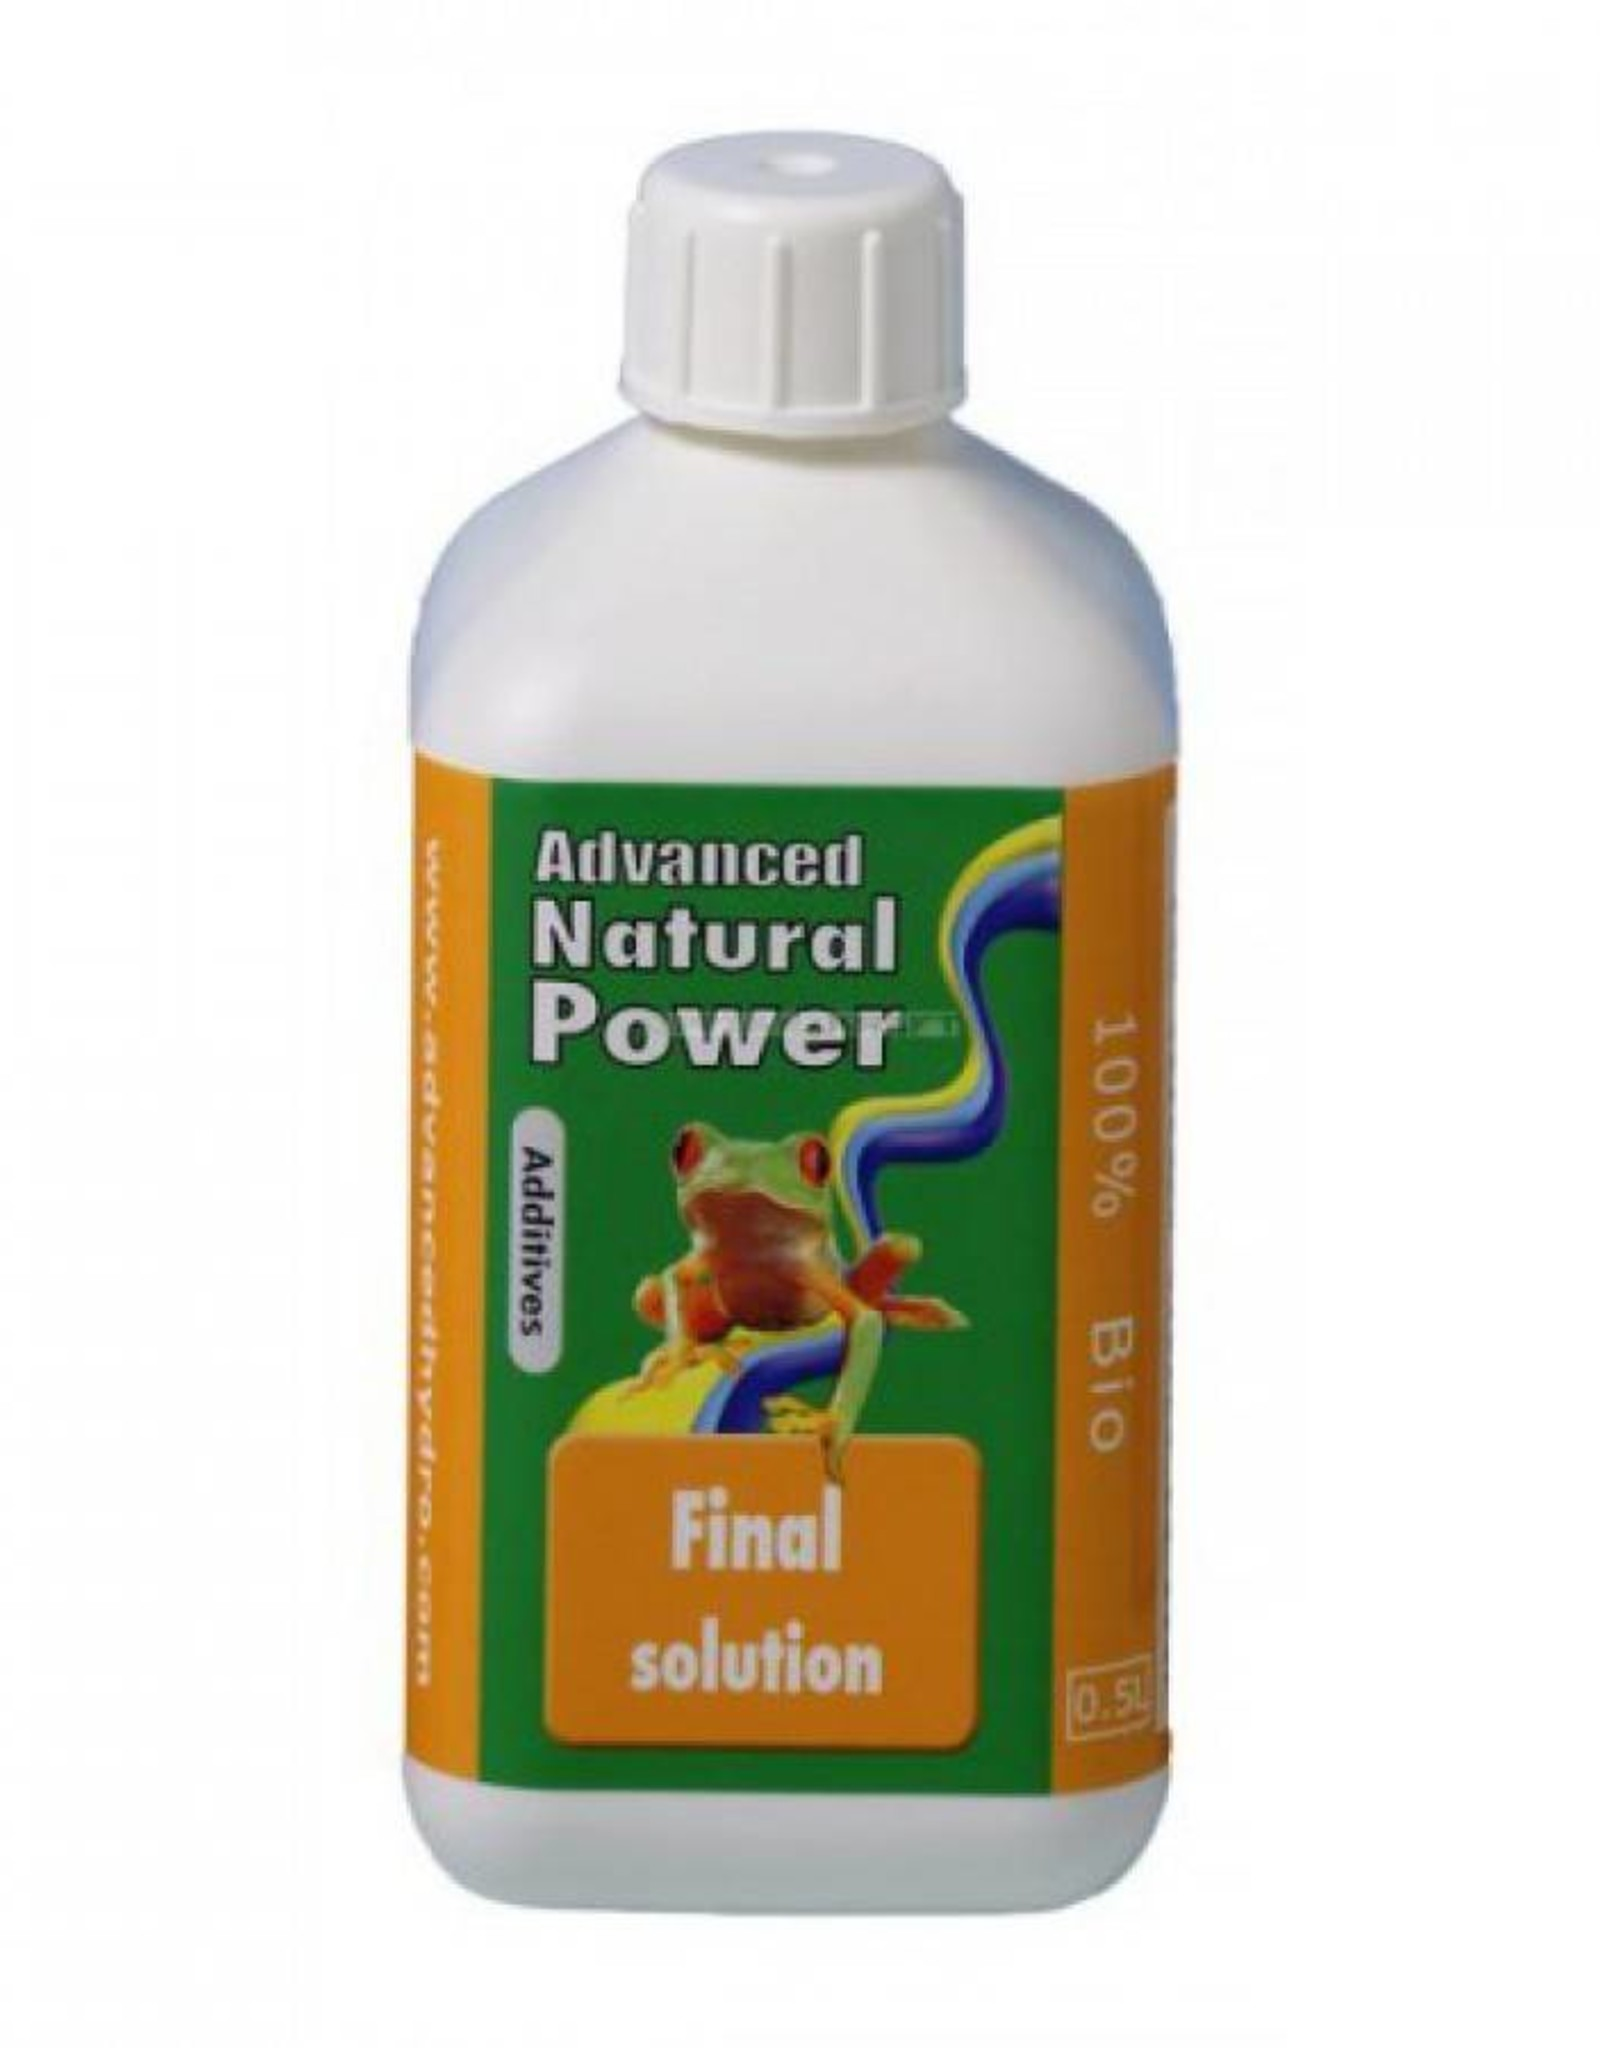 Advanced Hydroponic Advanced Natural Power Final Solution 5l